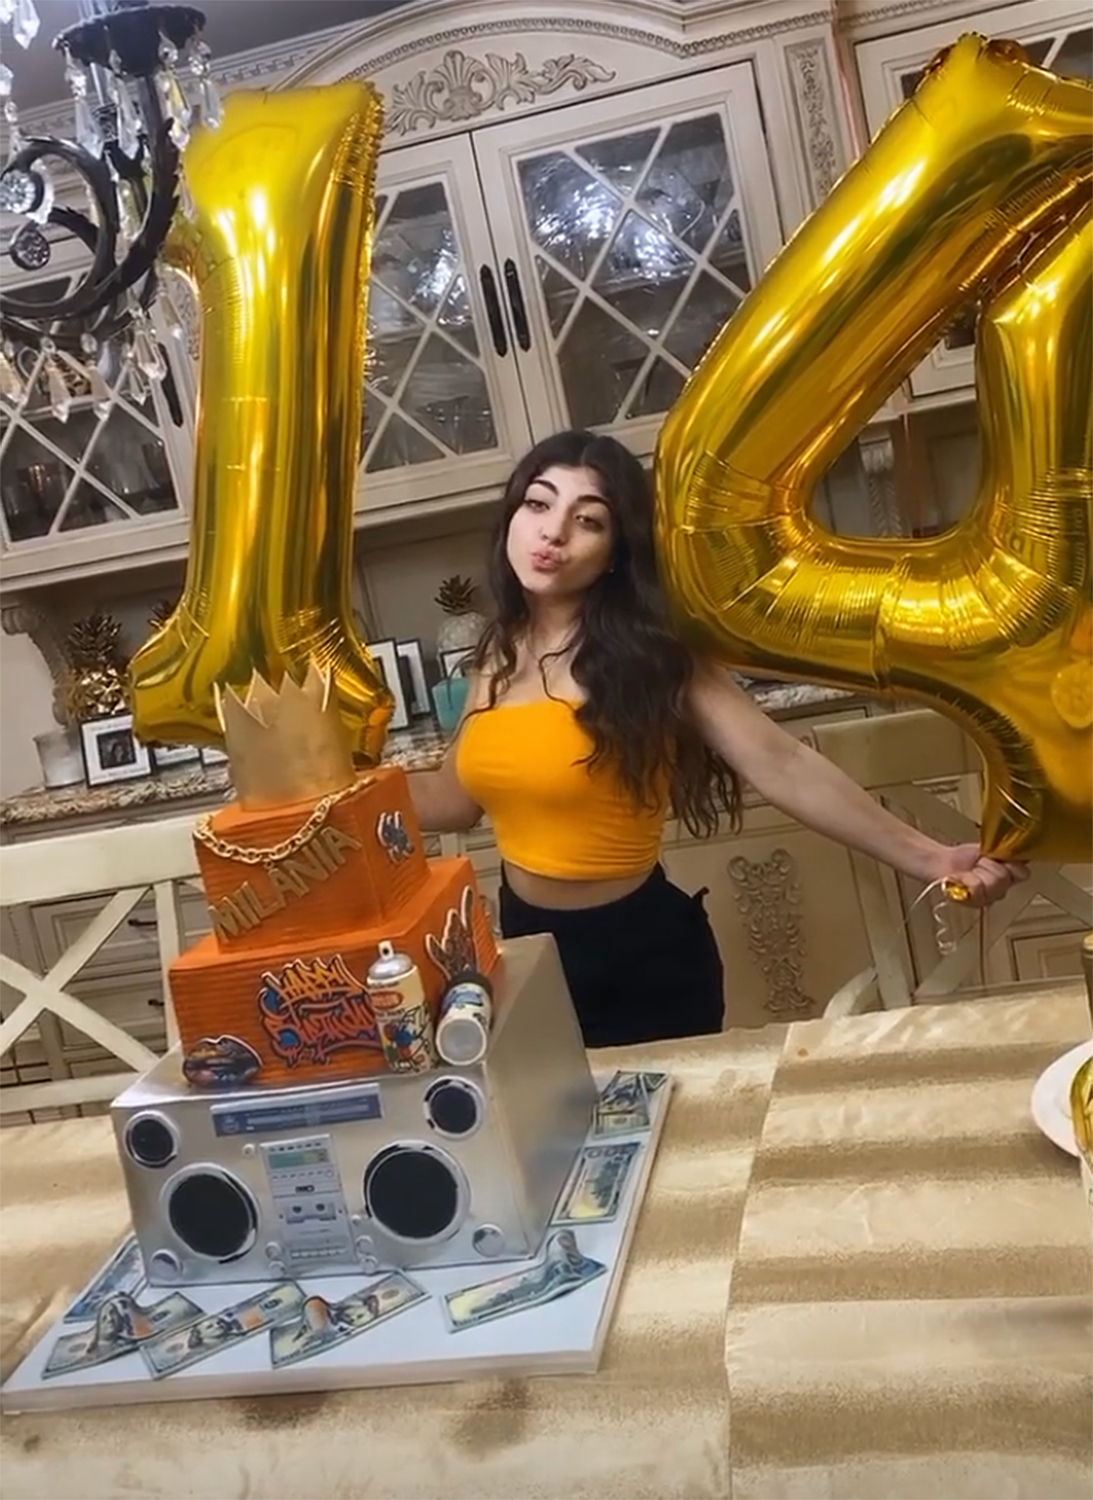 Astonishing Teresa Giudice Gets Milania Blinged Out Cake For 14Th Birthday Personalised Birthday Cards Arneslily Jamesorg